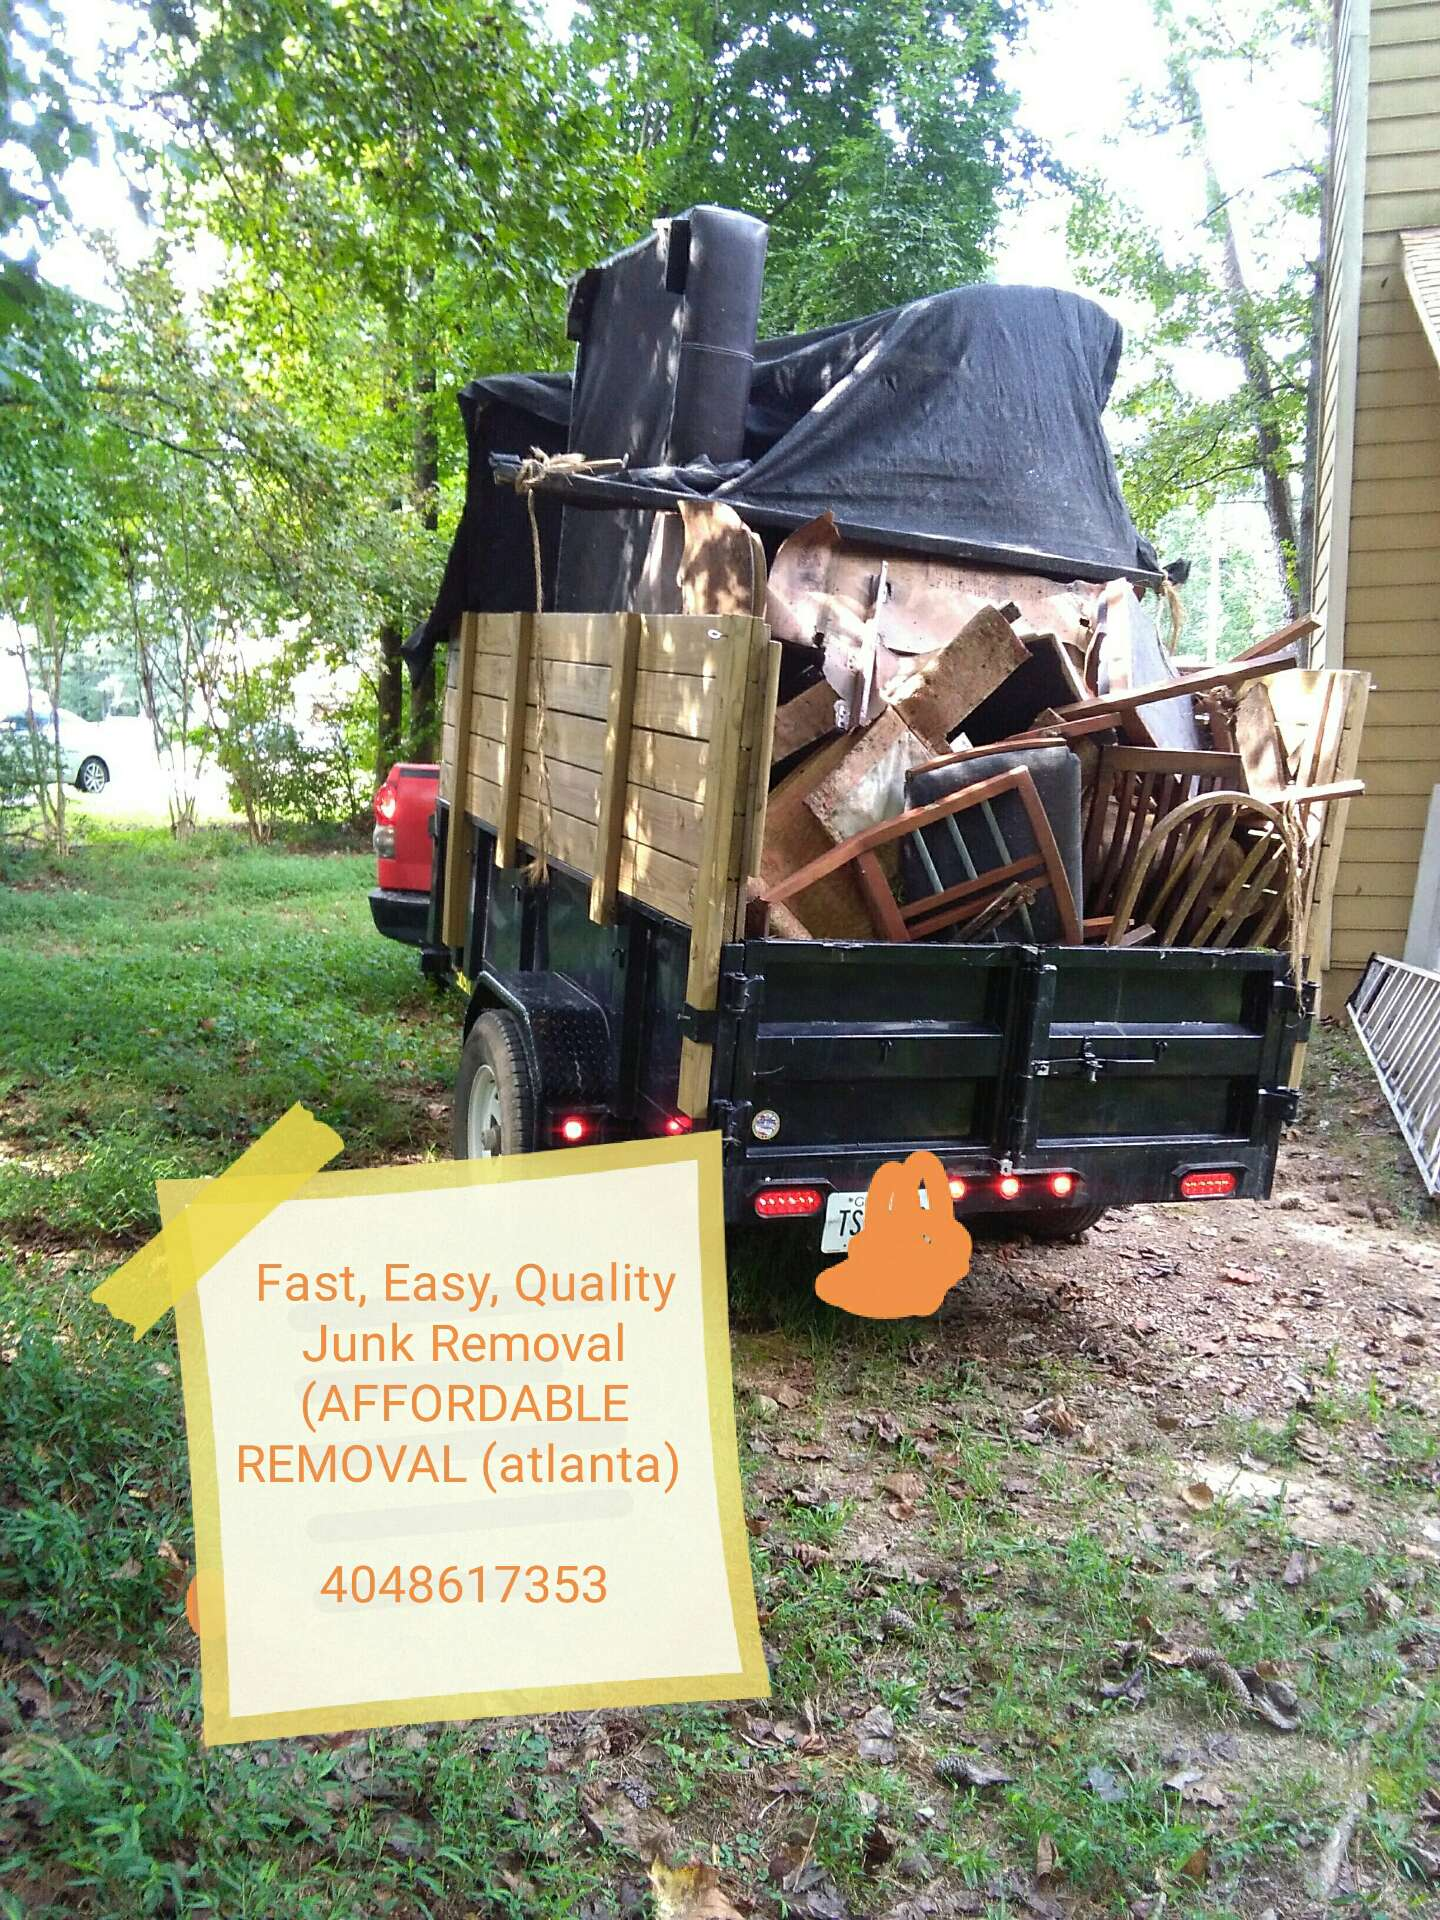 Photo Fast, Easy, Quality Junk Removal (AFFORDABLE REMOVAL (atlanta)The solution! Let Efficient Service Junk Removal do it all for you. We're a licensed contractor